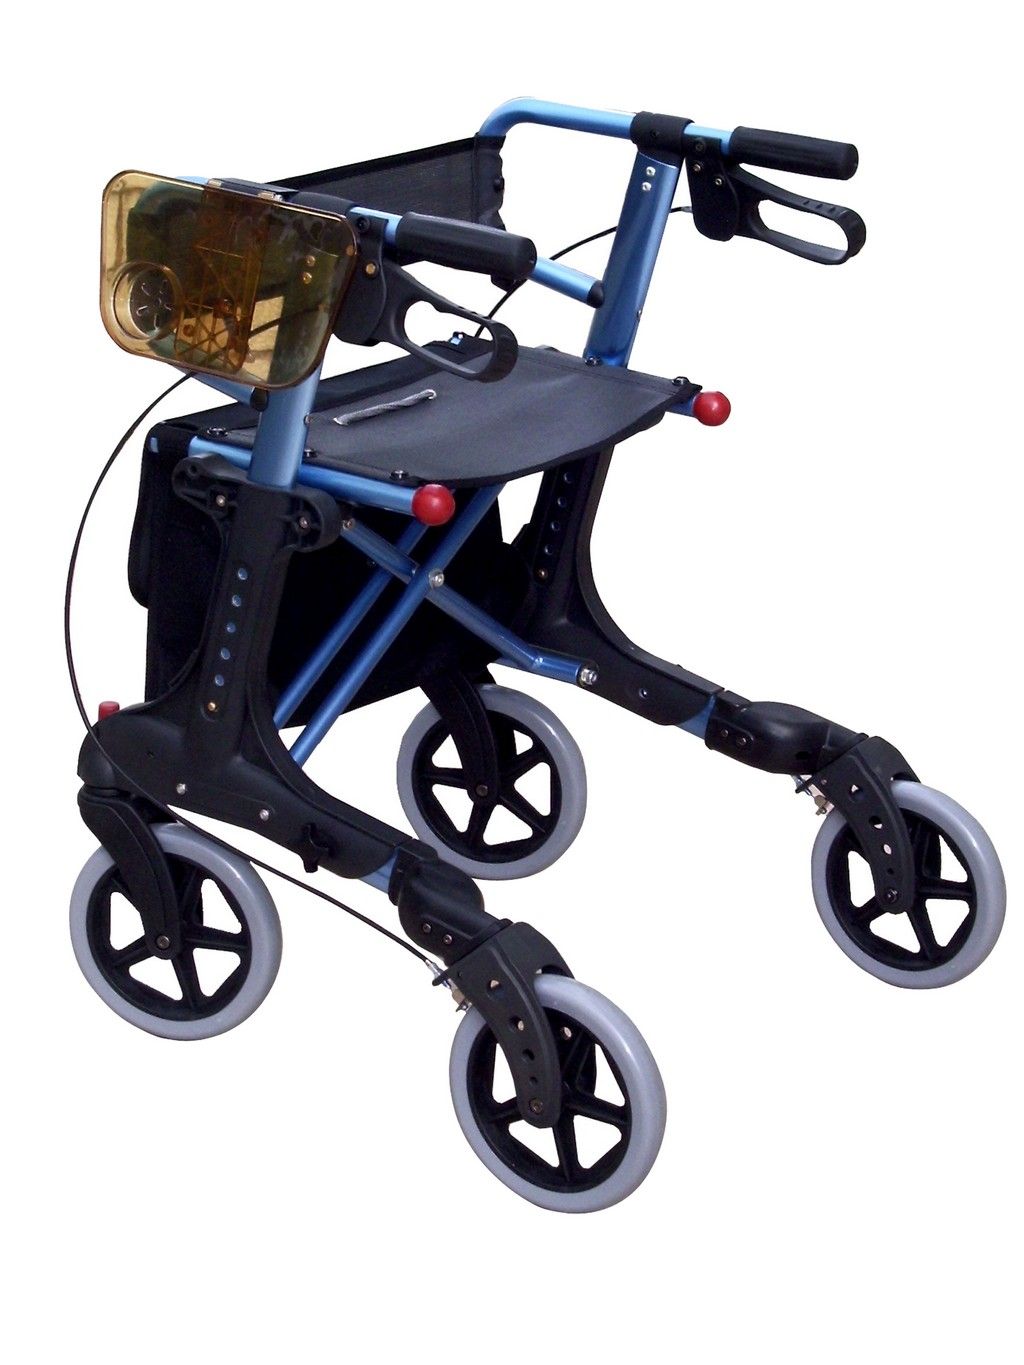 rollator walker, medline rollator walker parts, wheel rollator, rollator reviews